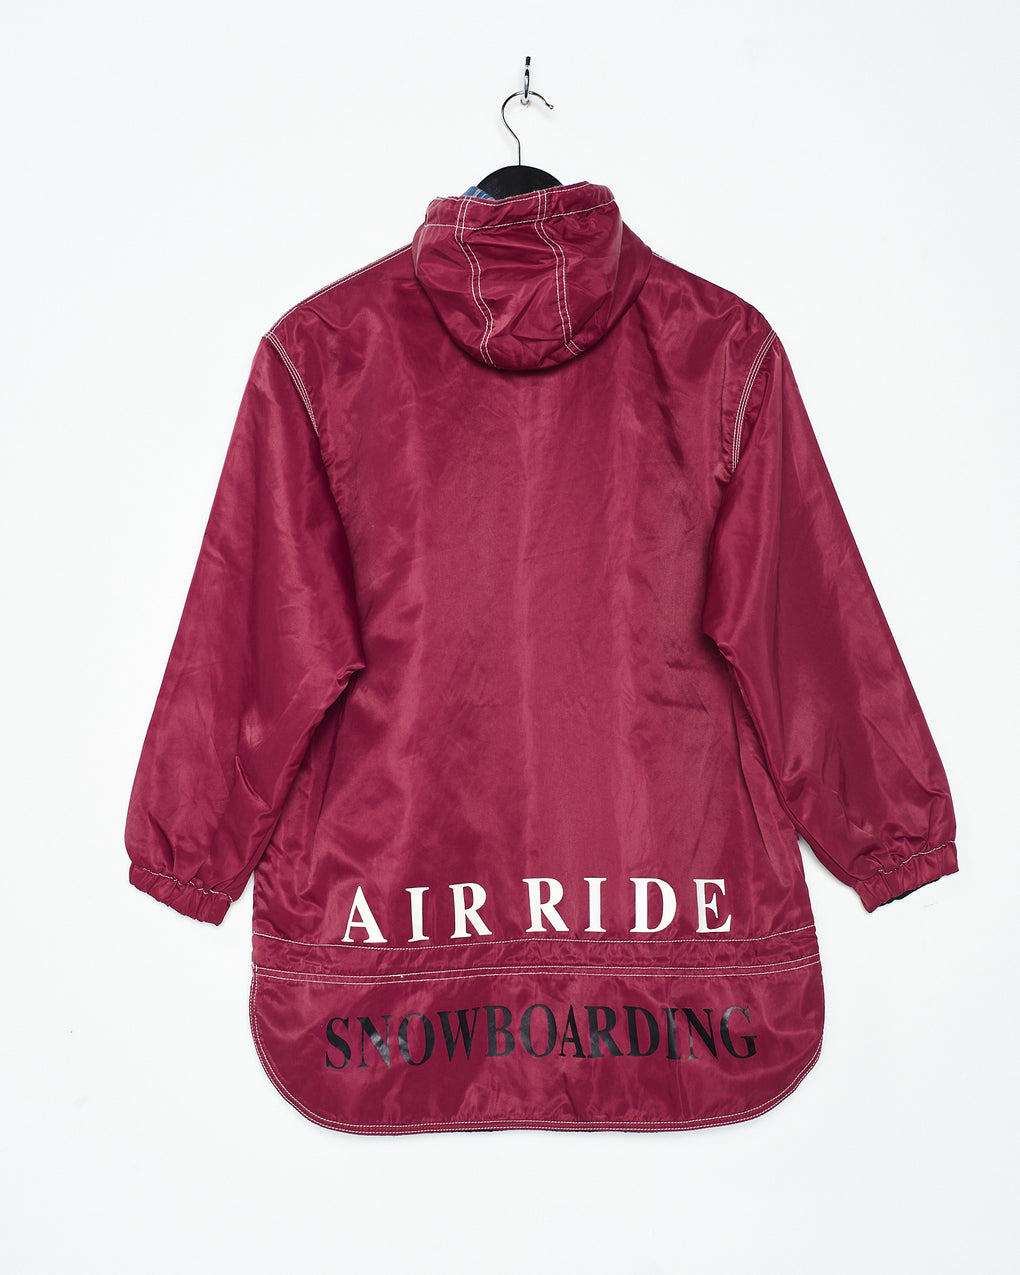 NCAA 'Air Ride' Reversible Snowboard Jacket (XS)